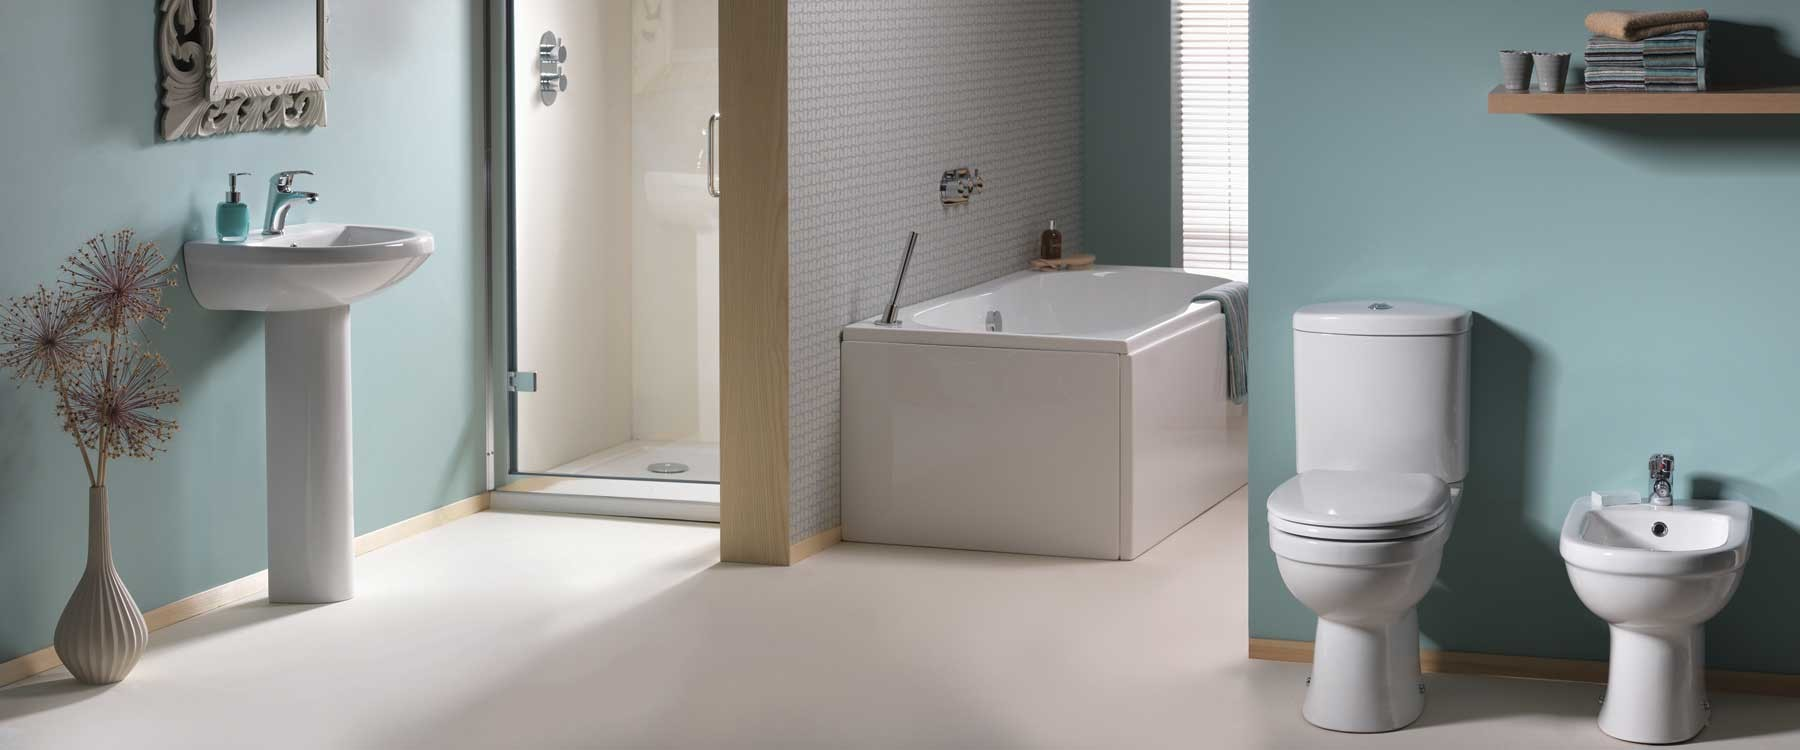 Bathrooms for every budget